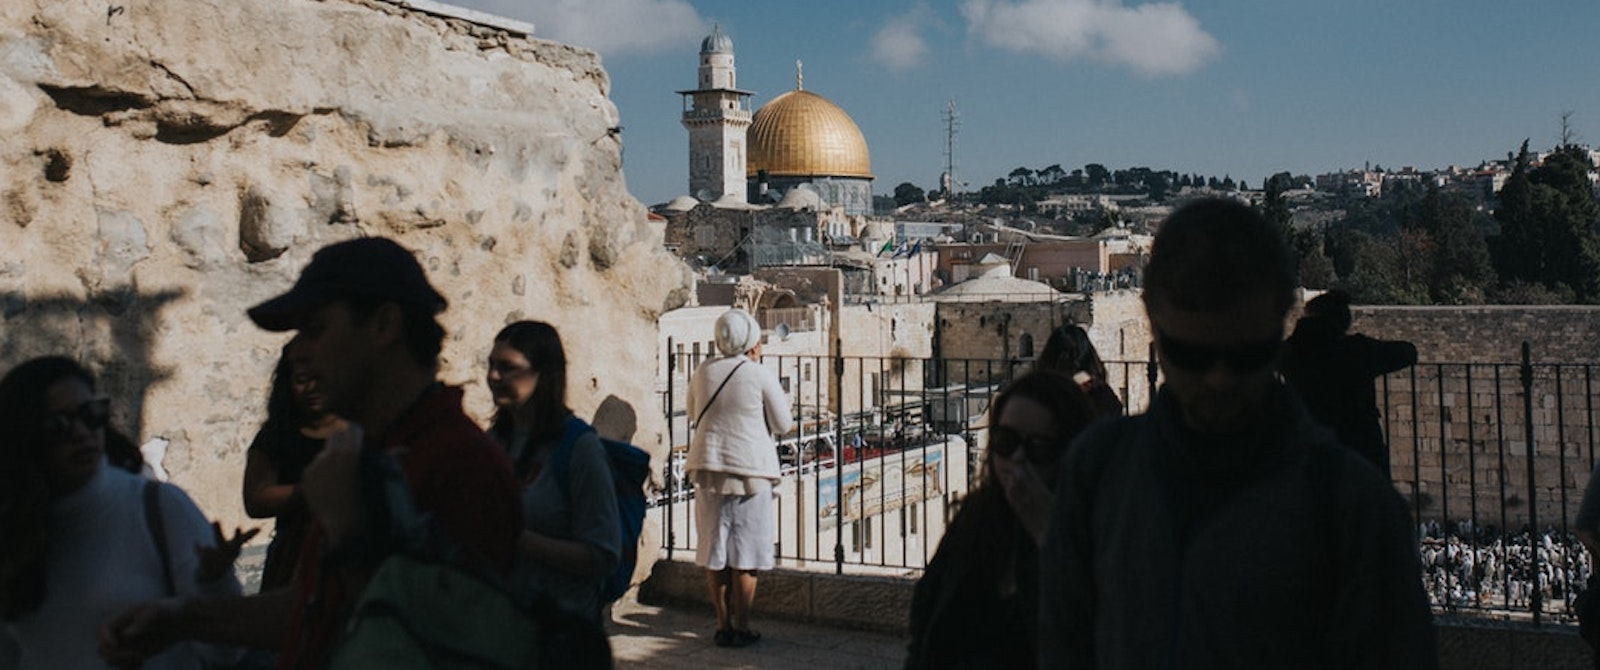 West Jerusalem (Photo: Cole Keister/ unsplash)